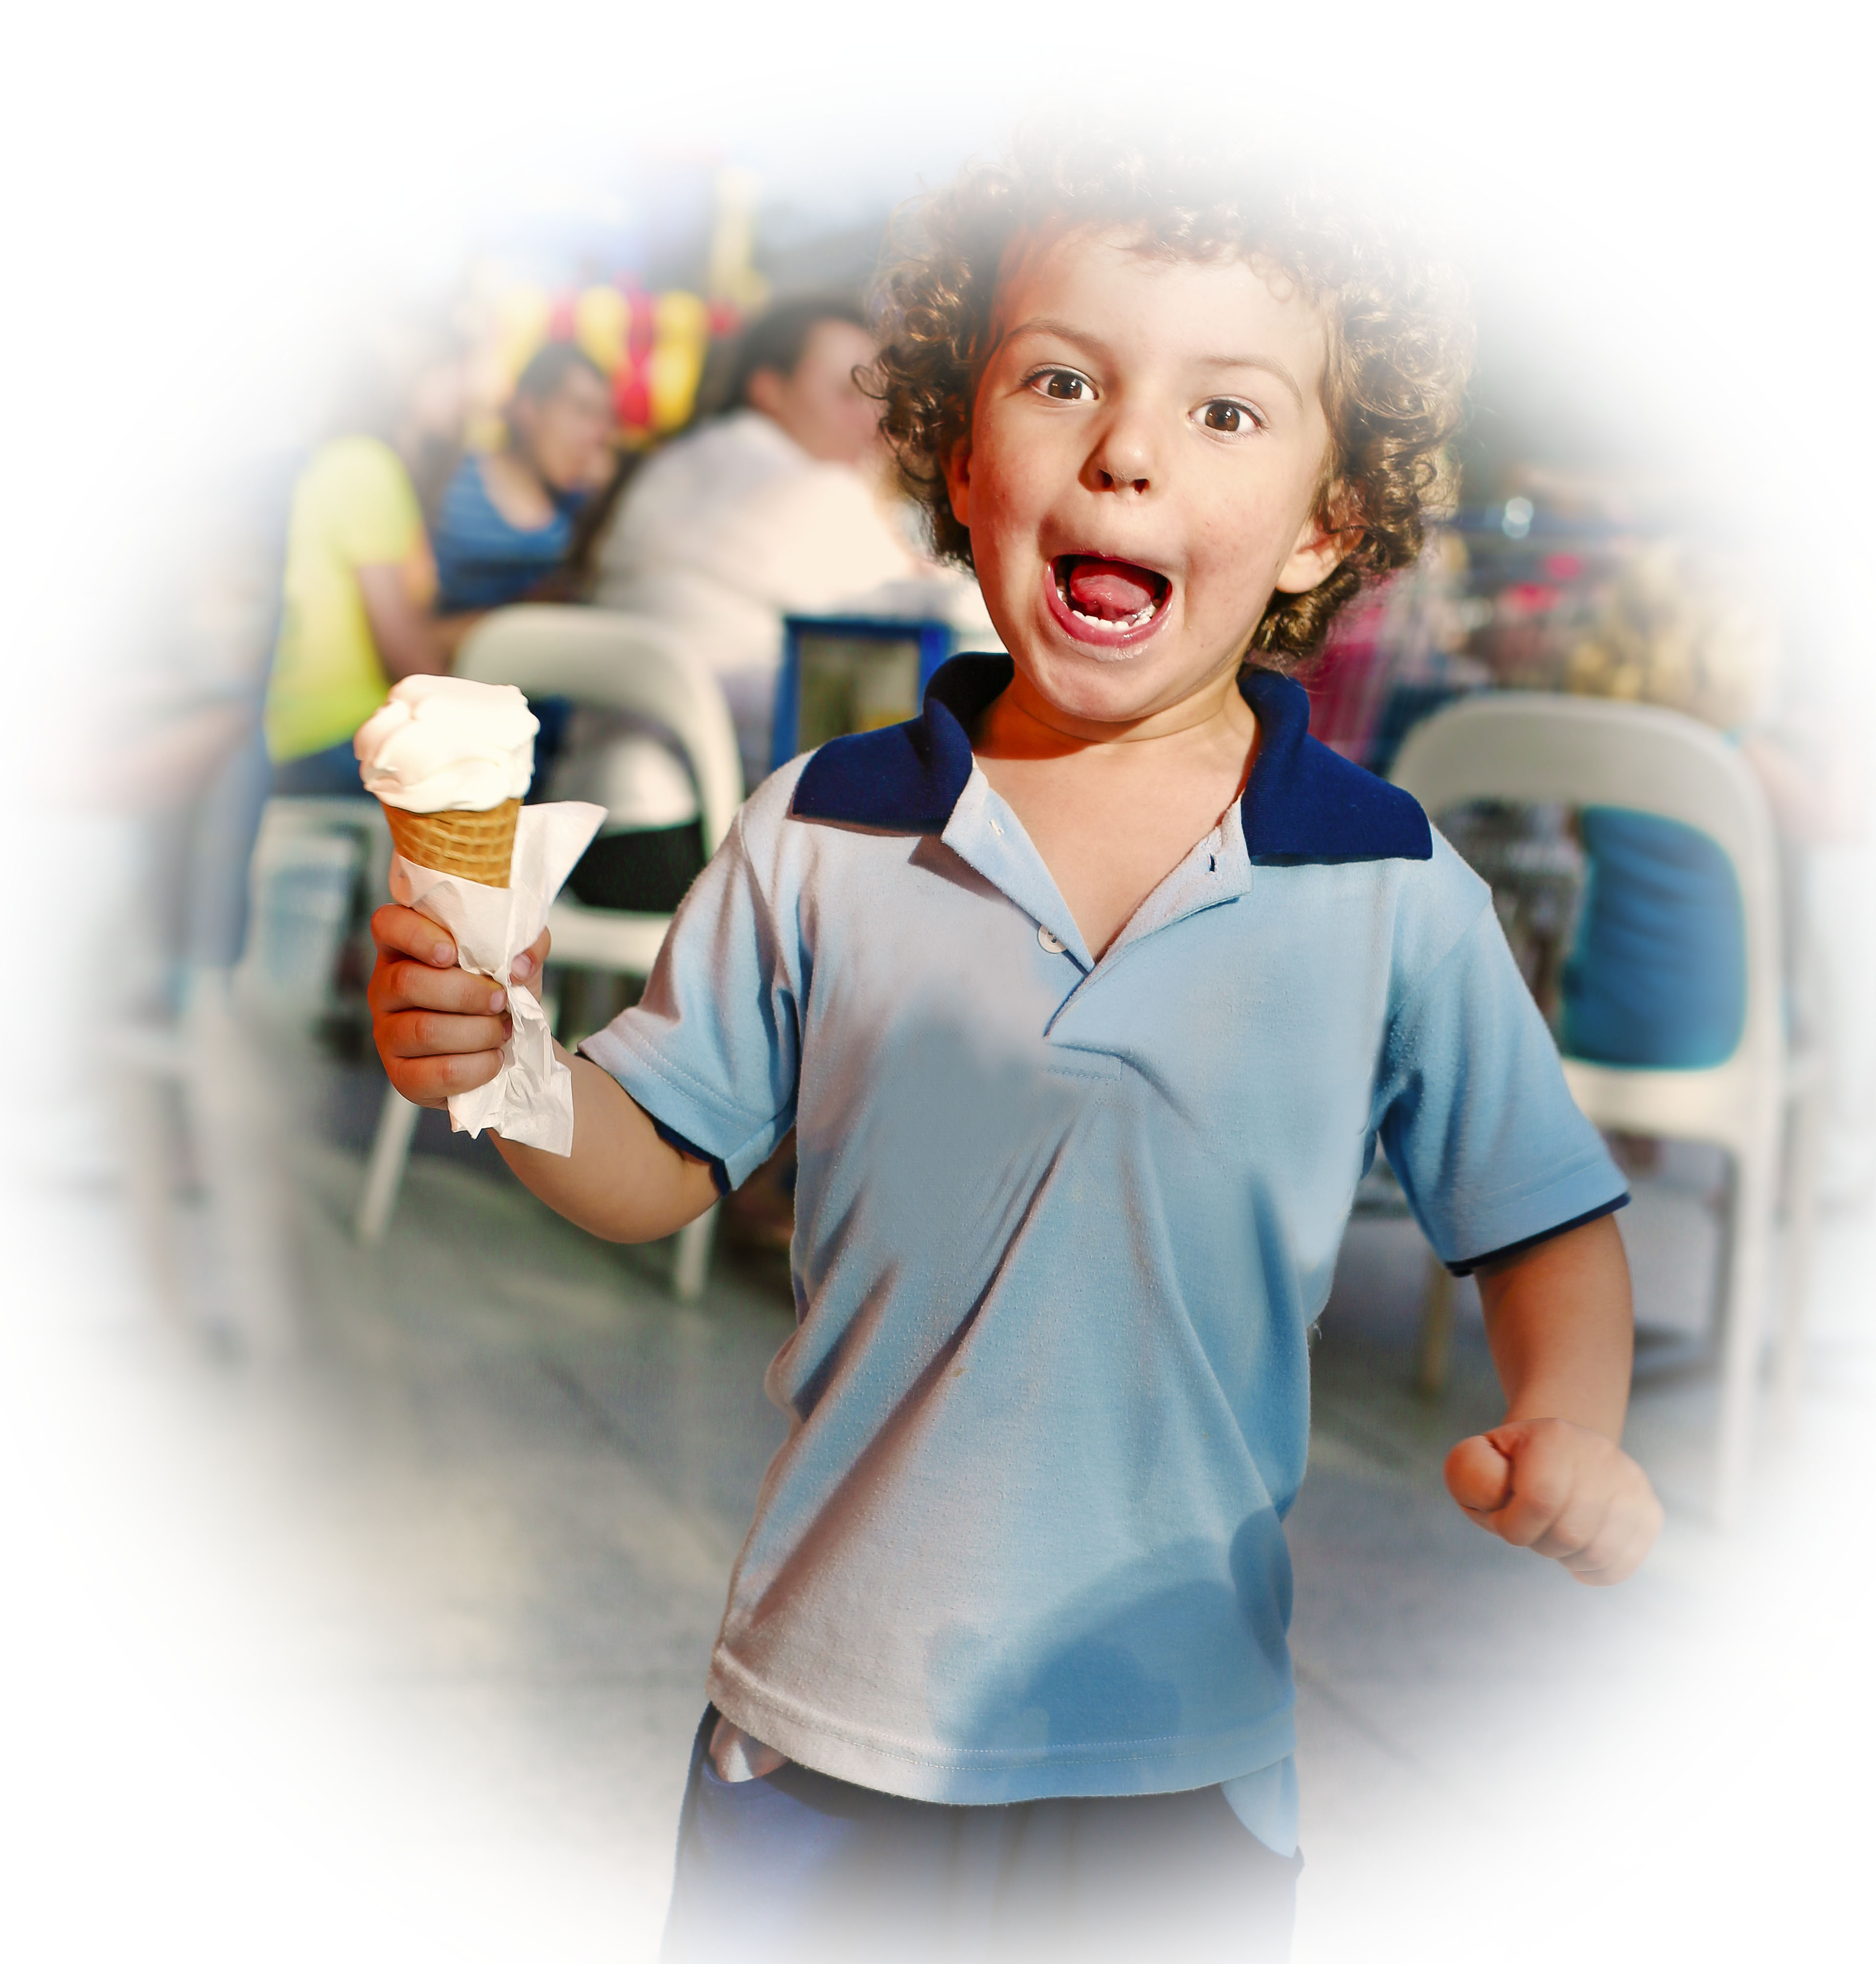 Child boy eating ice cream in a cafe shopping center, concept of fast food